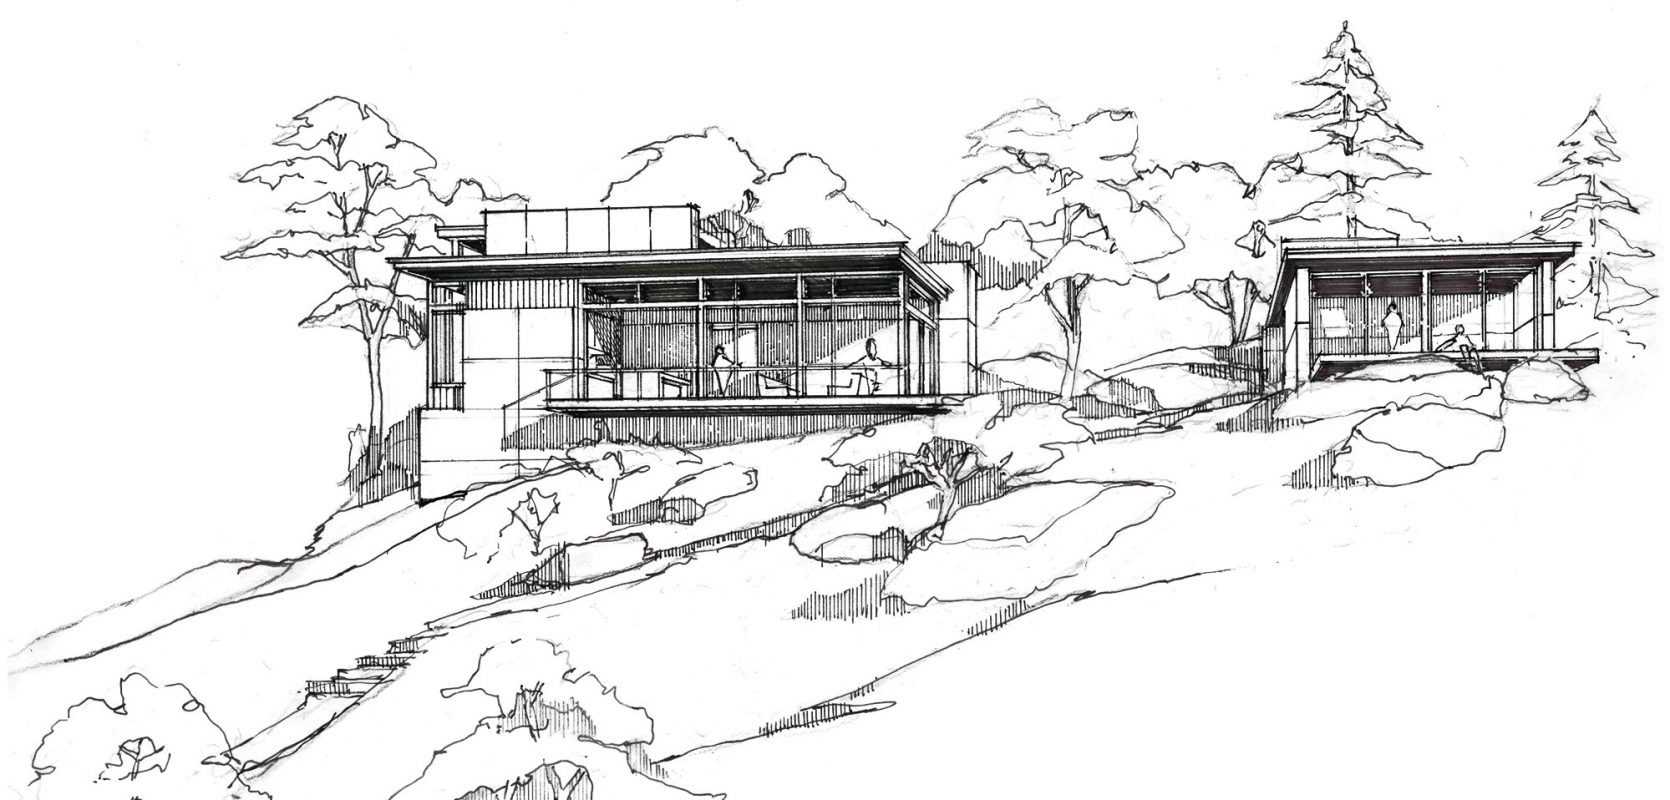 hand drawing sketch of home and studio exterior on ledge